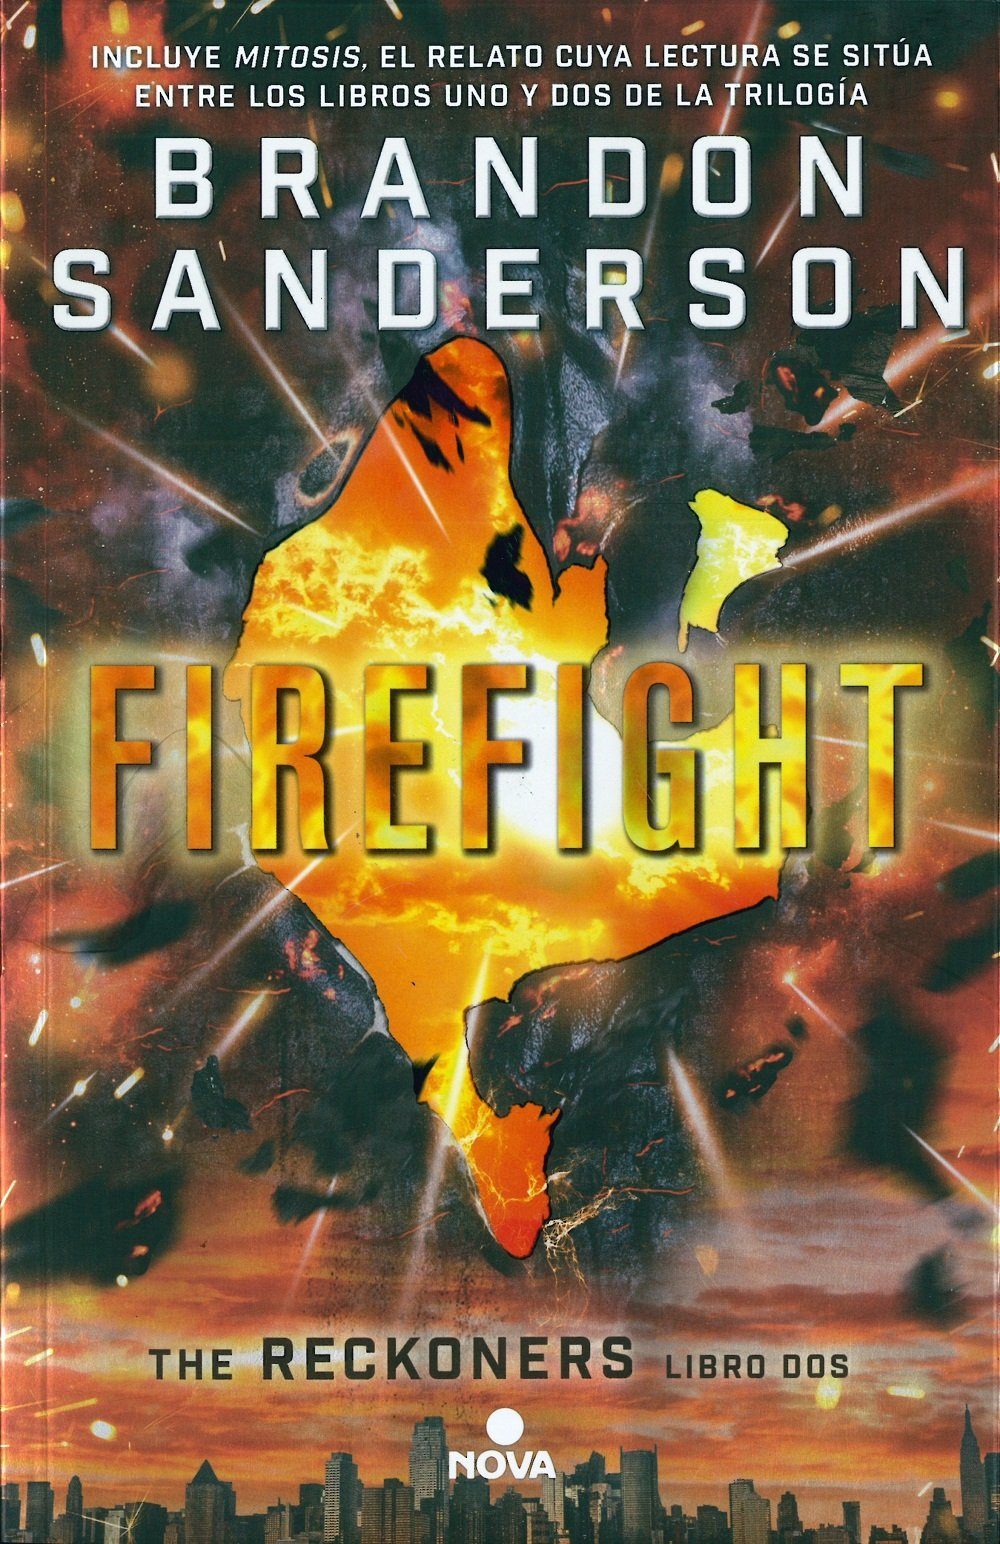 Firefight (Trilogía de los Reckoners 2) (Nova) Tapa blanda – 7 ene 2016 Brandon Sanderson 846665836X Science Fiction - General FICTION / Dystopian